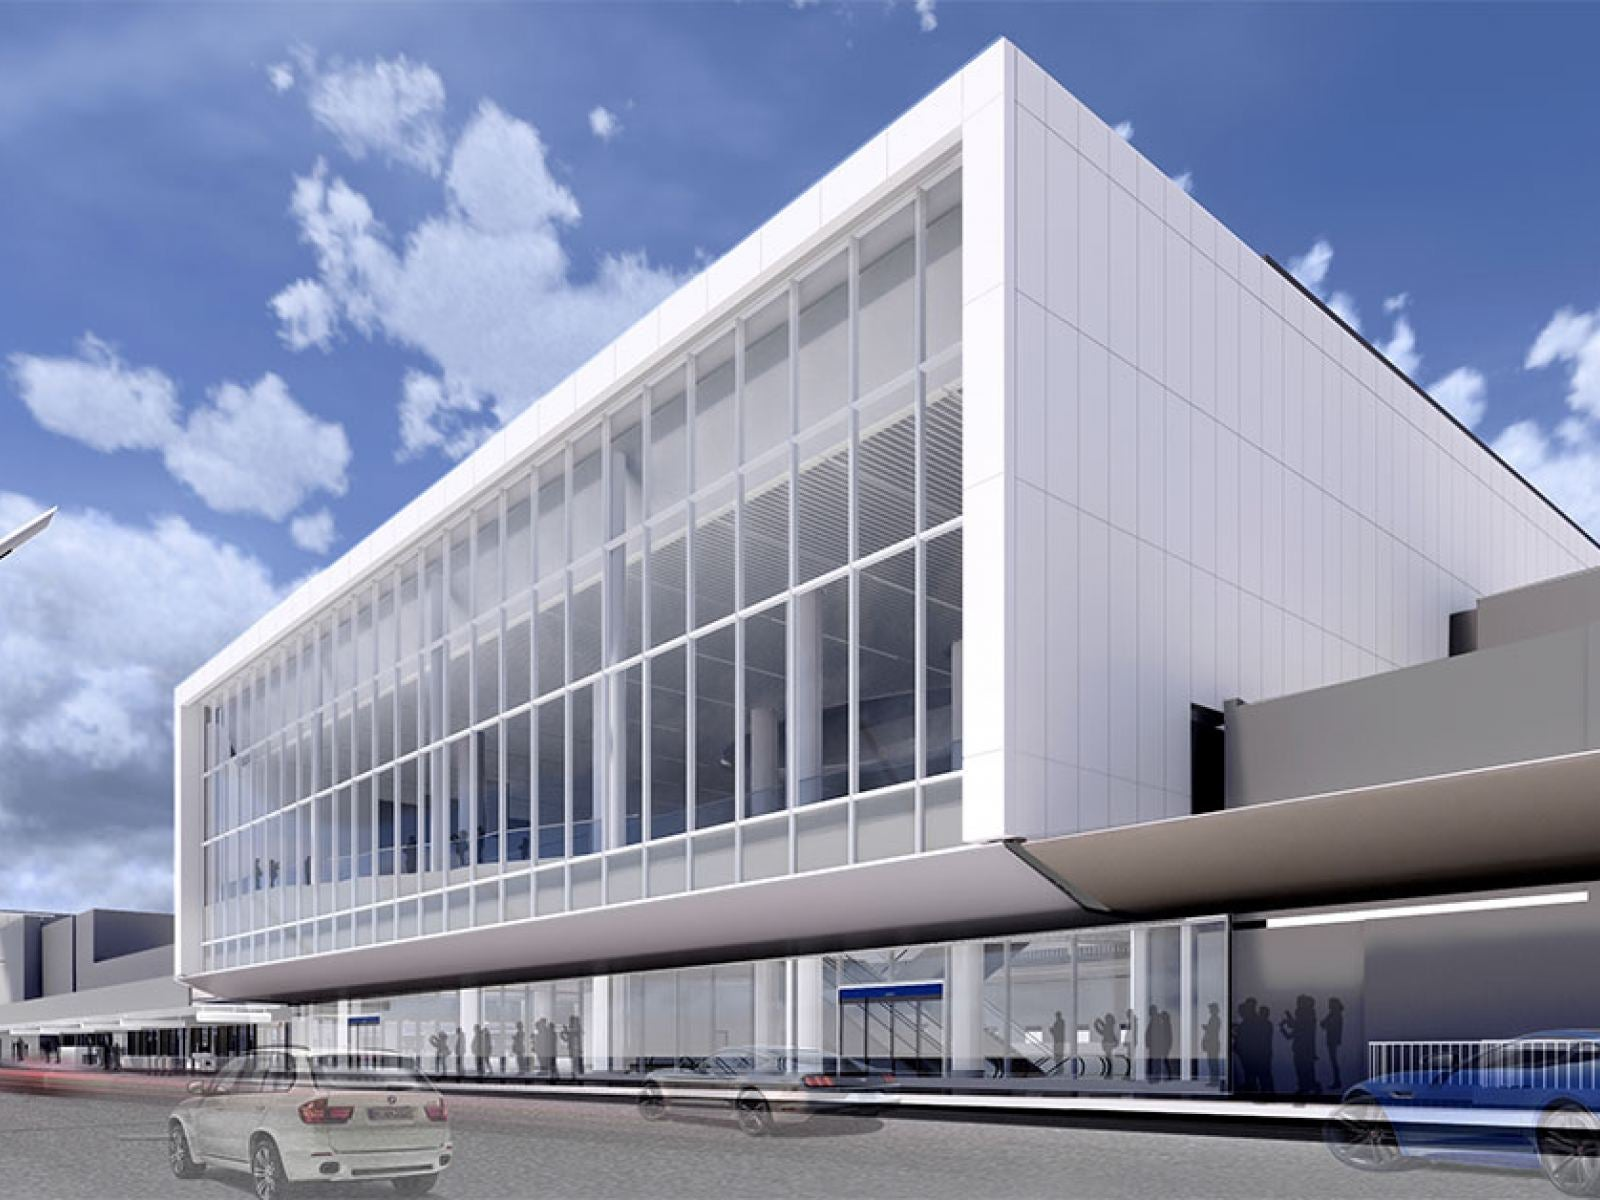 Main image for article titled American Airlines & LAWA Break Ground on $1.6 Billion Renovation of LAX Terminals 4 & 5